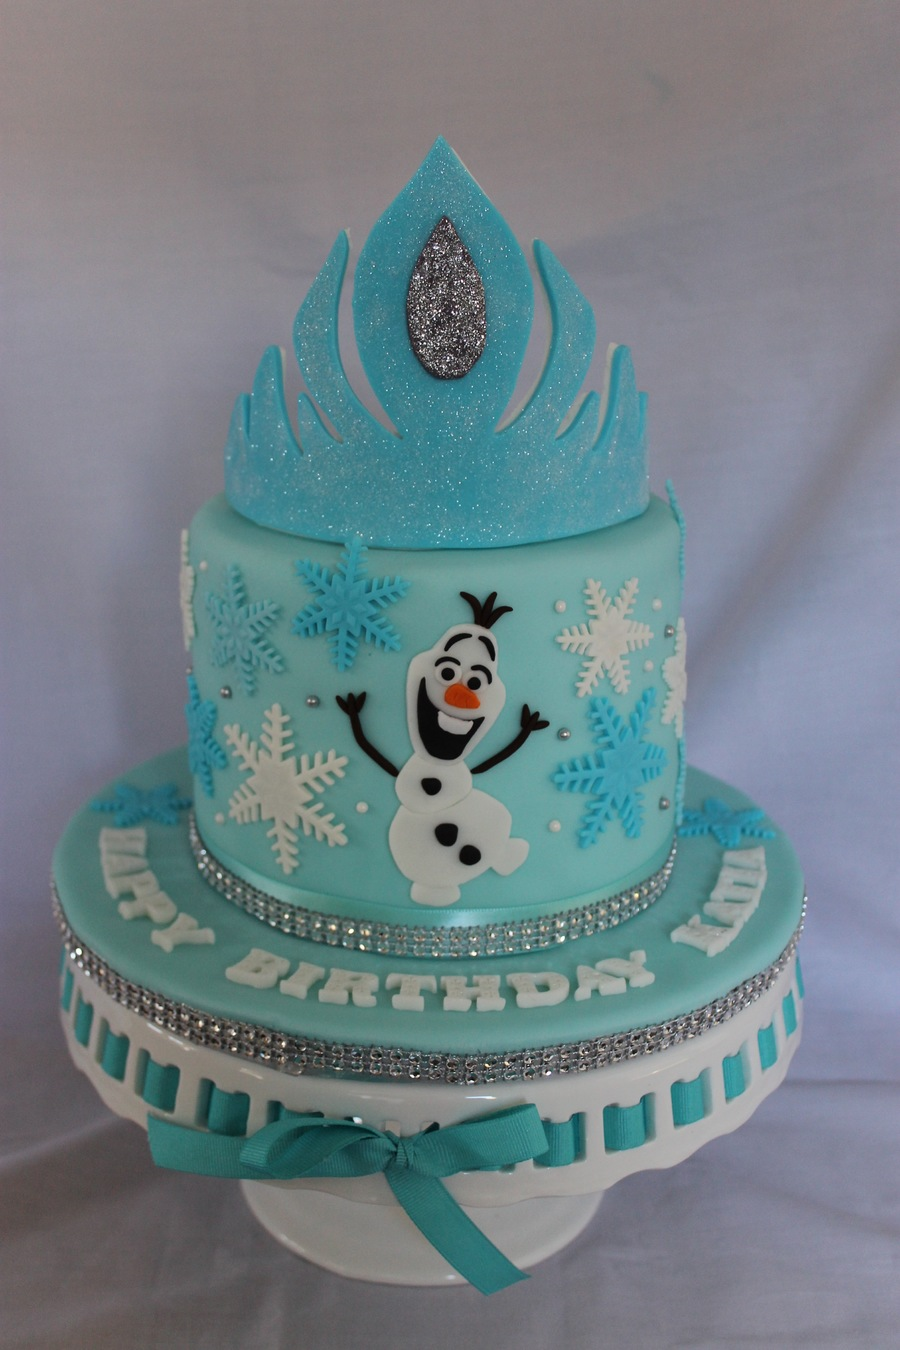 8EZ5wRRZRB-frozen-themed-birthday-cake_900.jpg